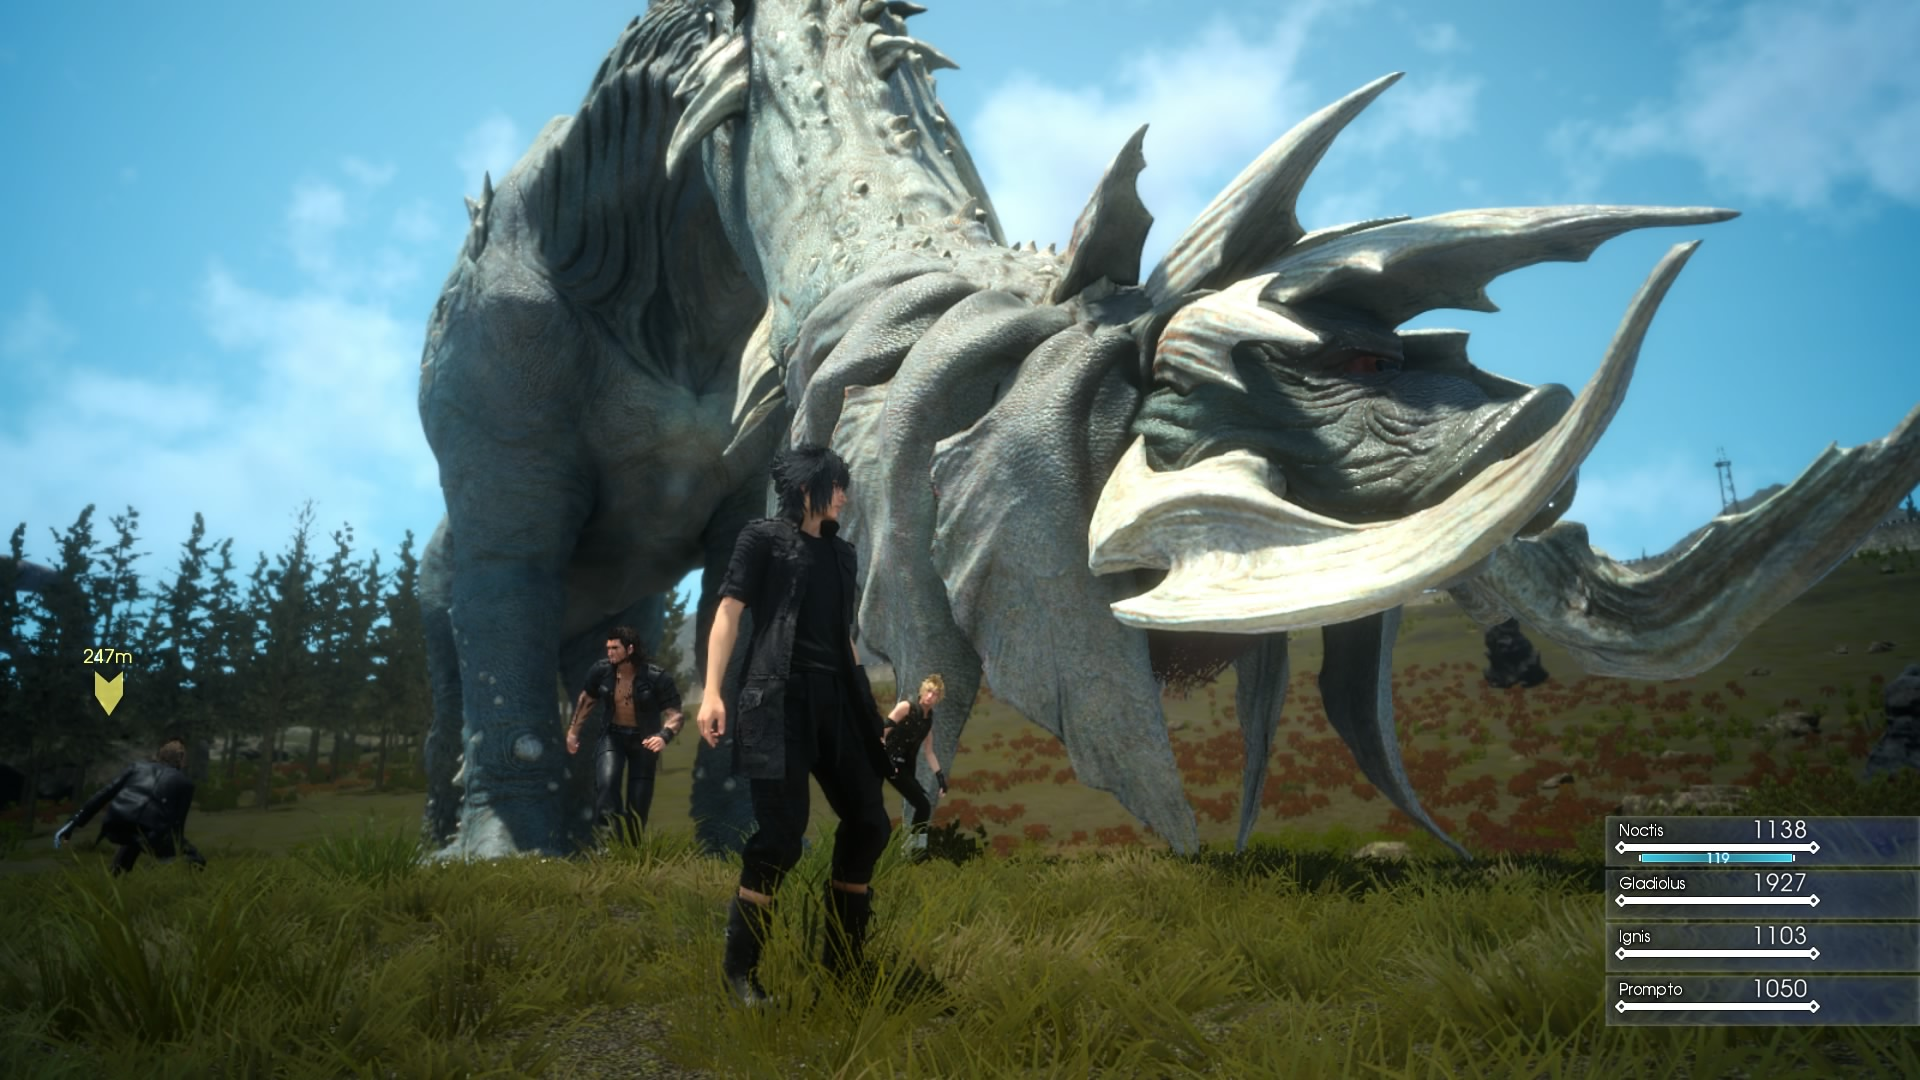 Bos Gladiolen Final Fantasy Xv Episode Duscae Videos Show How To Kill